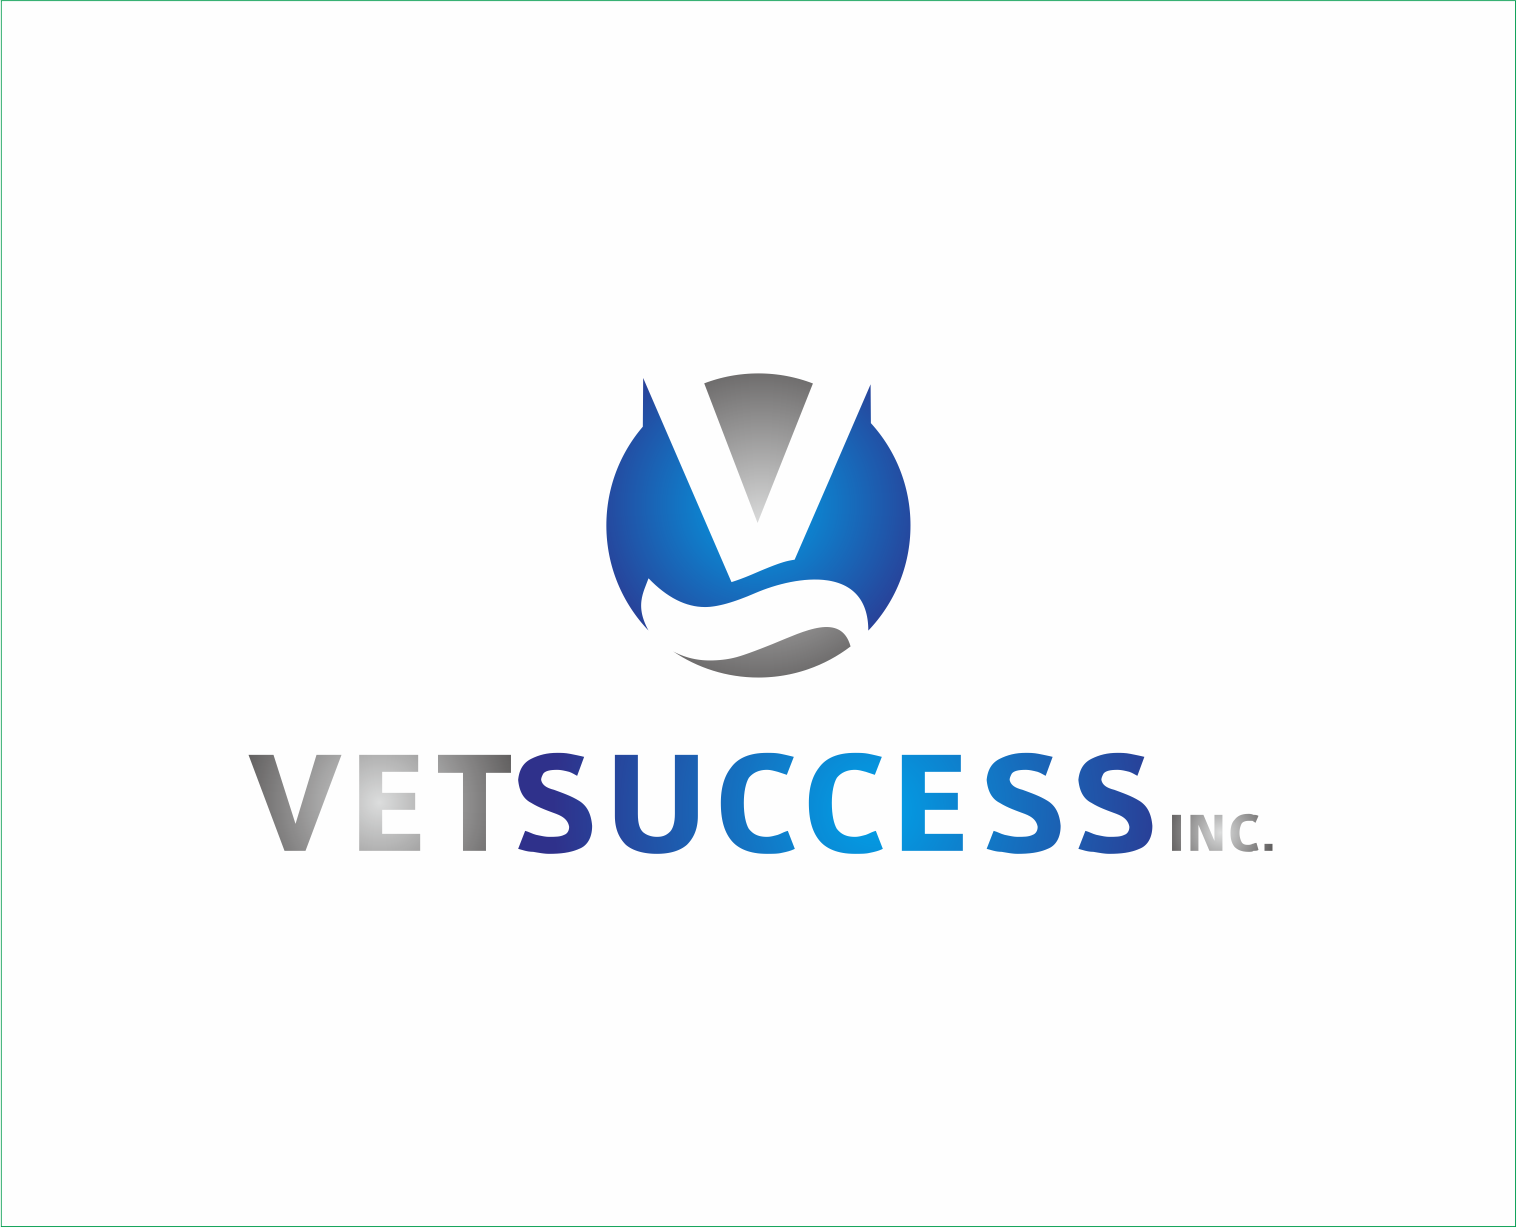 Logo Design by Armada Jamaluddin - Entry No. 136 in the Logo Design Contest Imaginative Logo Design for Vet Success Inc..